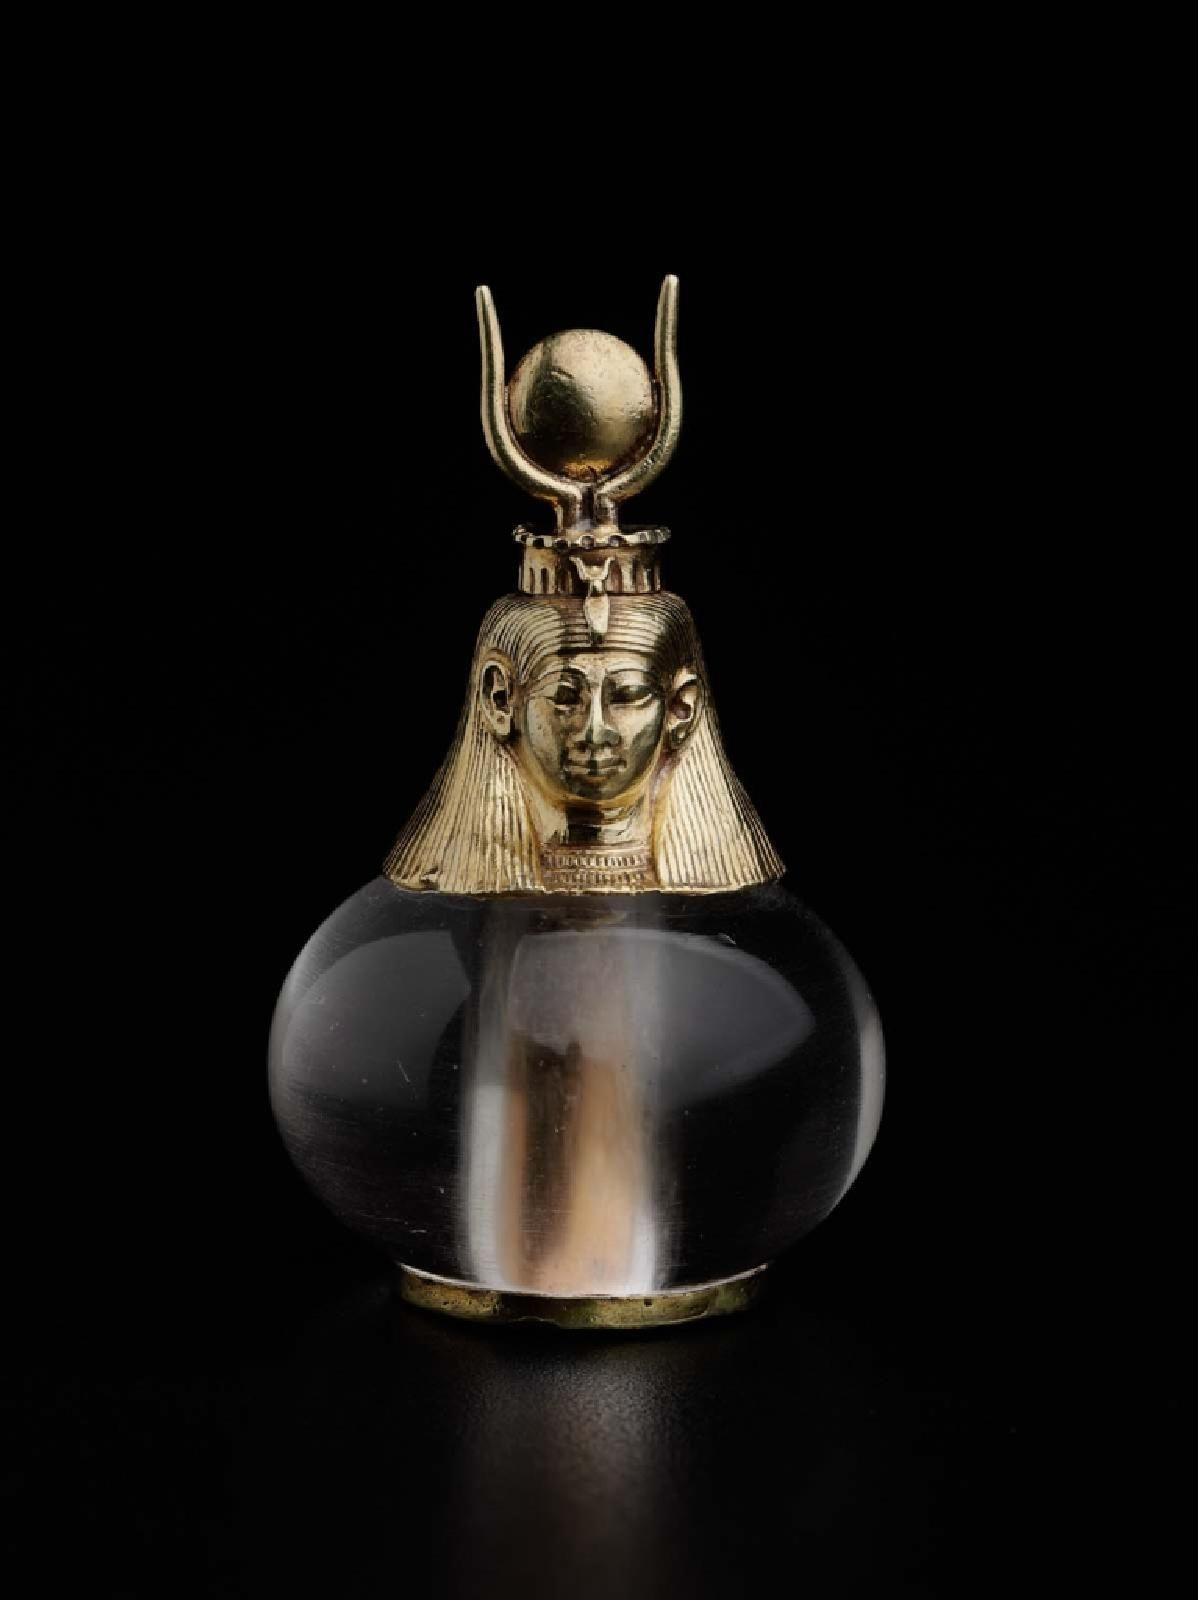 Photograph of Egyptian round crystal container with a gold Hathor headed top.